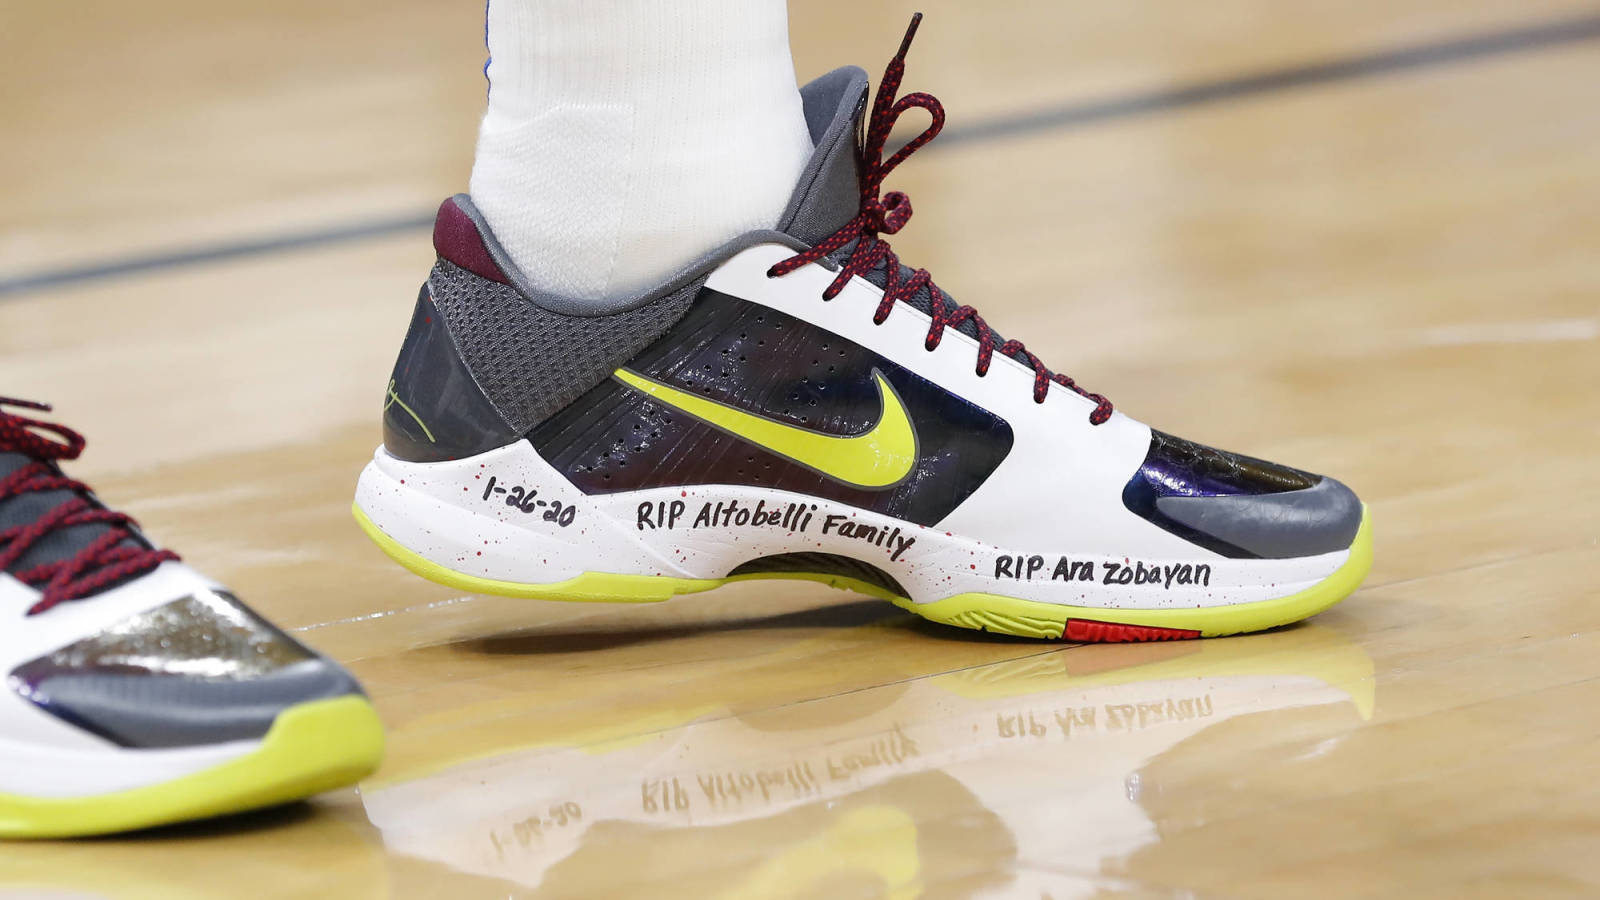 Luka Doncic Wears Kobe S Shoes With All Nine Crash Victims Names Written On Them Yardbarker